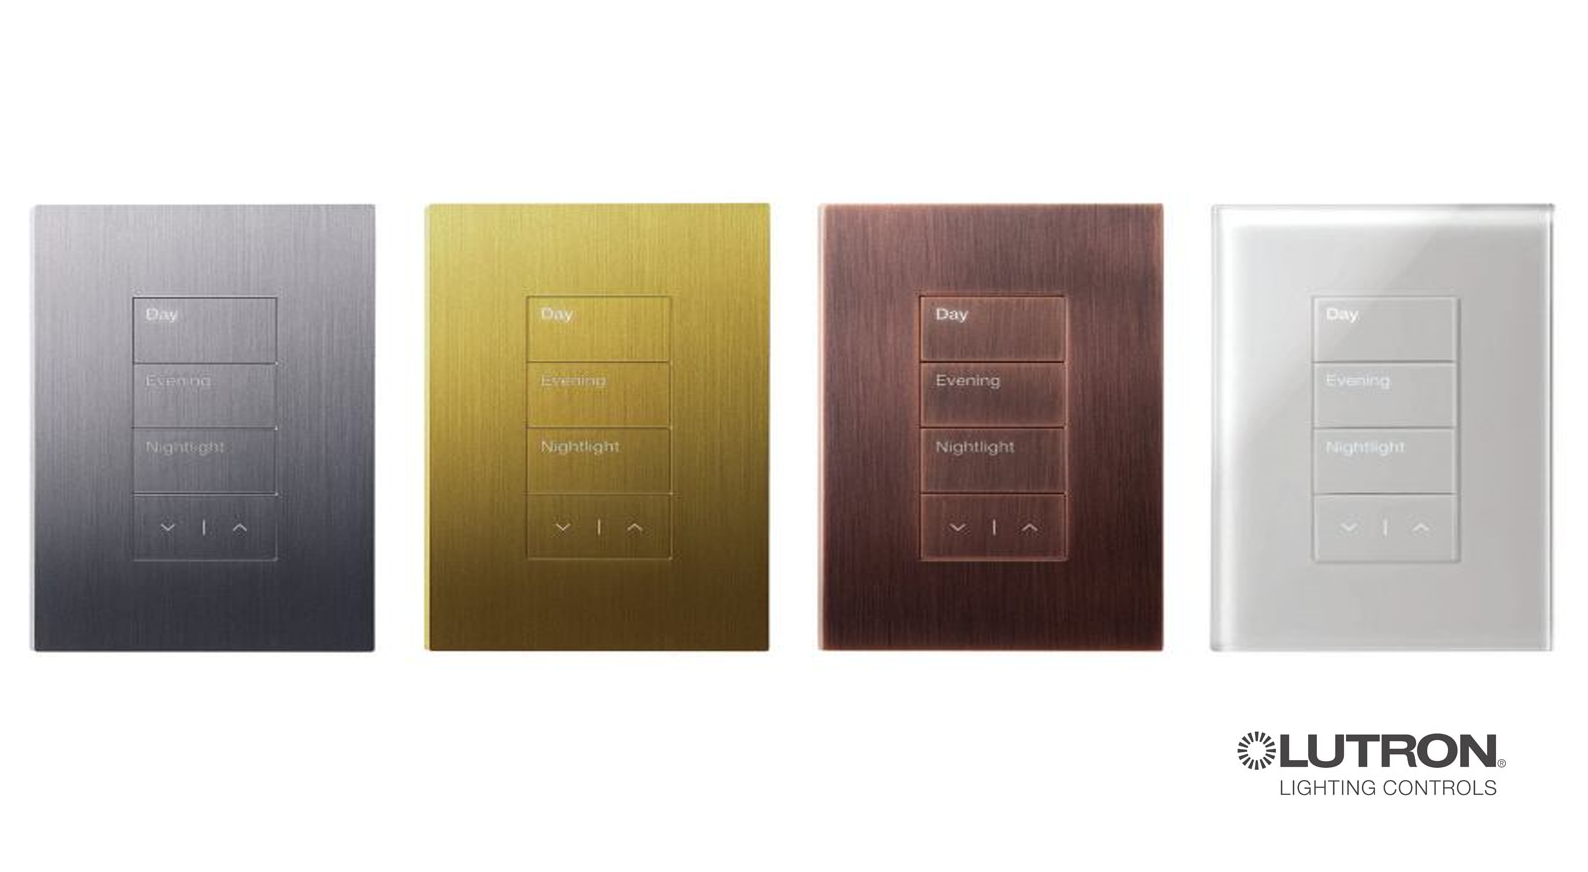 Lutron Lighting Controls For Hotels